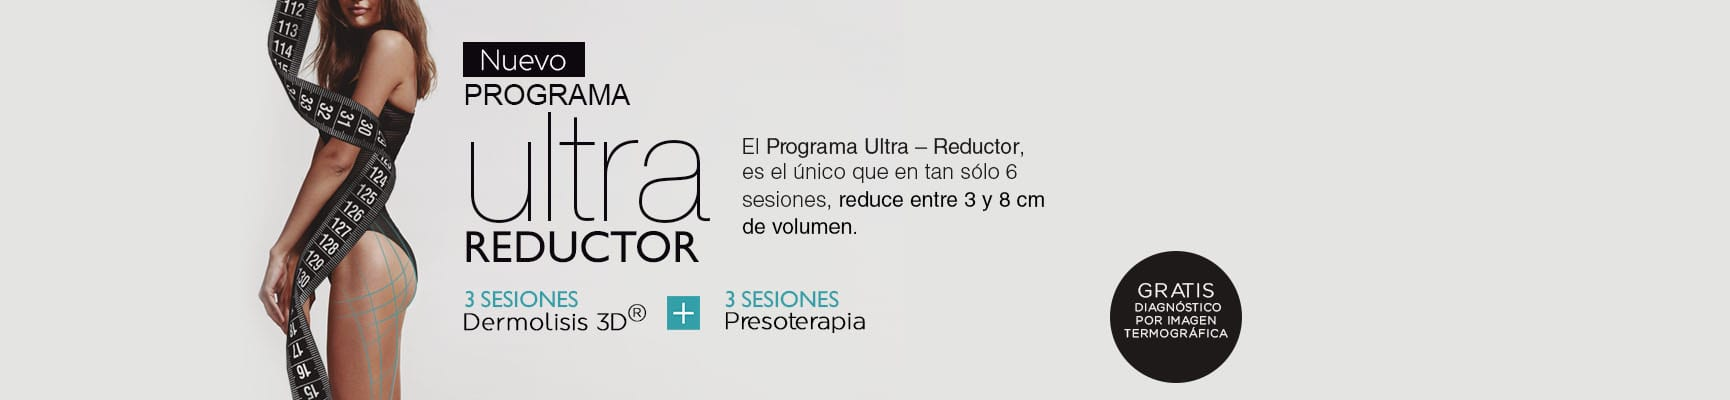 Programa Ultra Reductor Frontpage